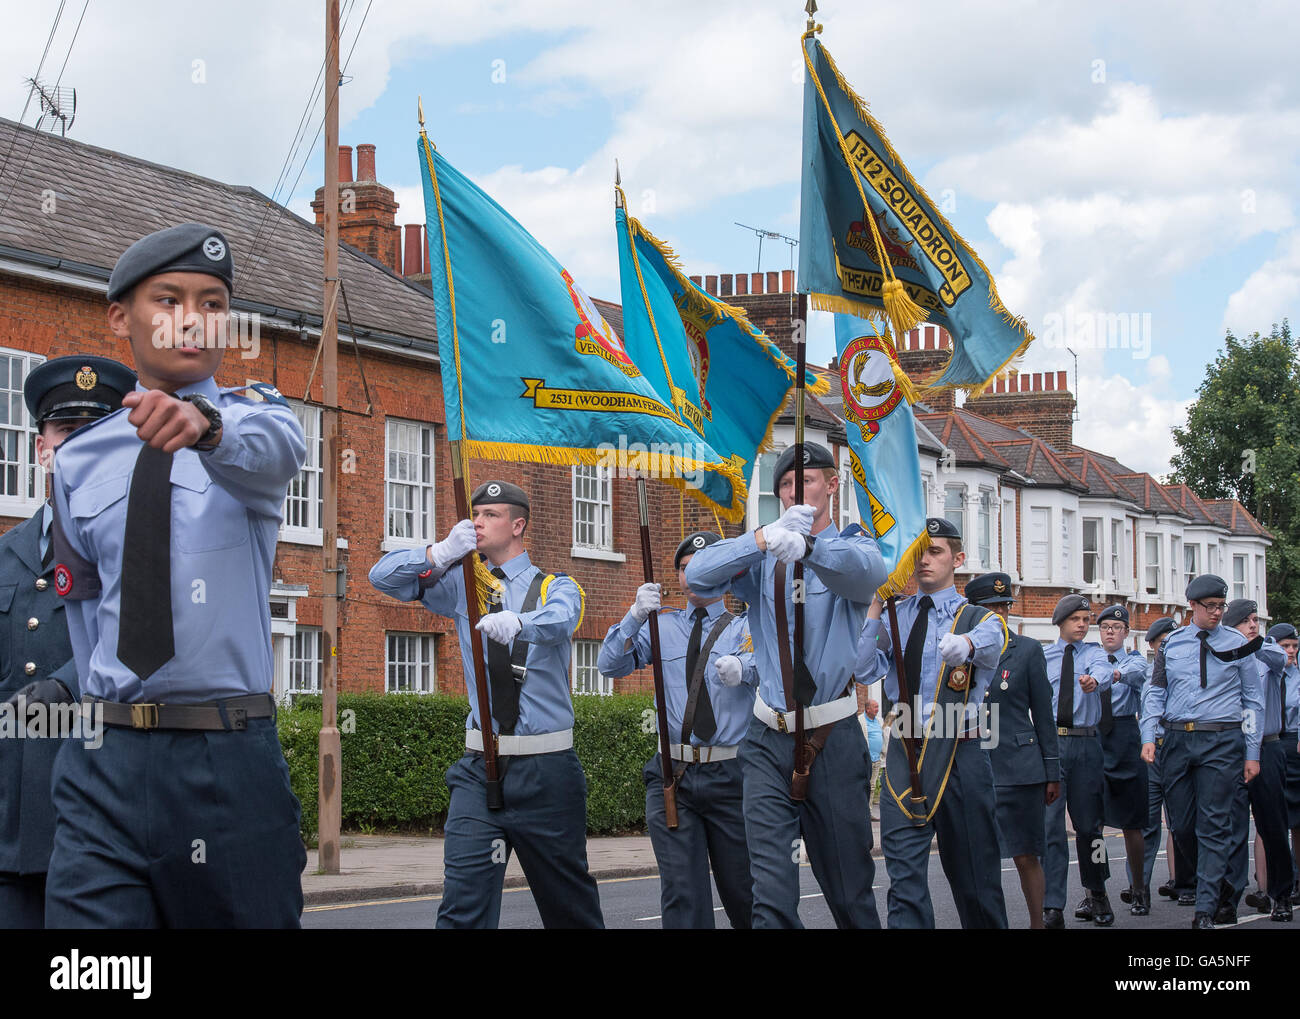 Brentwood Essex, 3rd July 2016,Standards of the Essex Wing of the ATC in the 75th Anniversary parade. Credit:  Ian - Stock Image